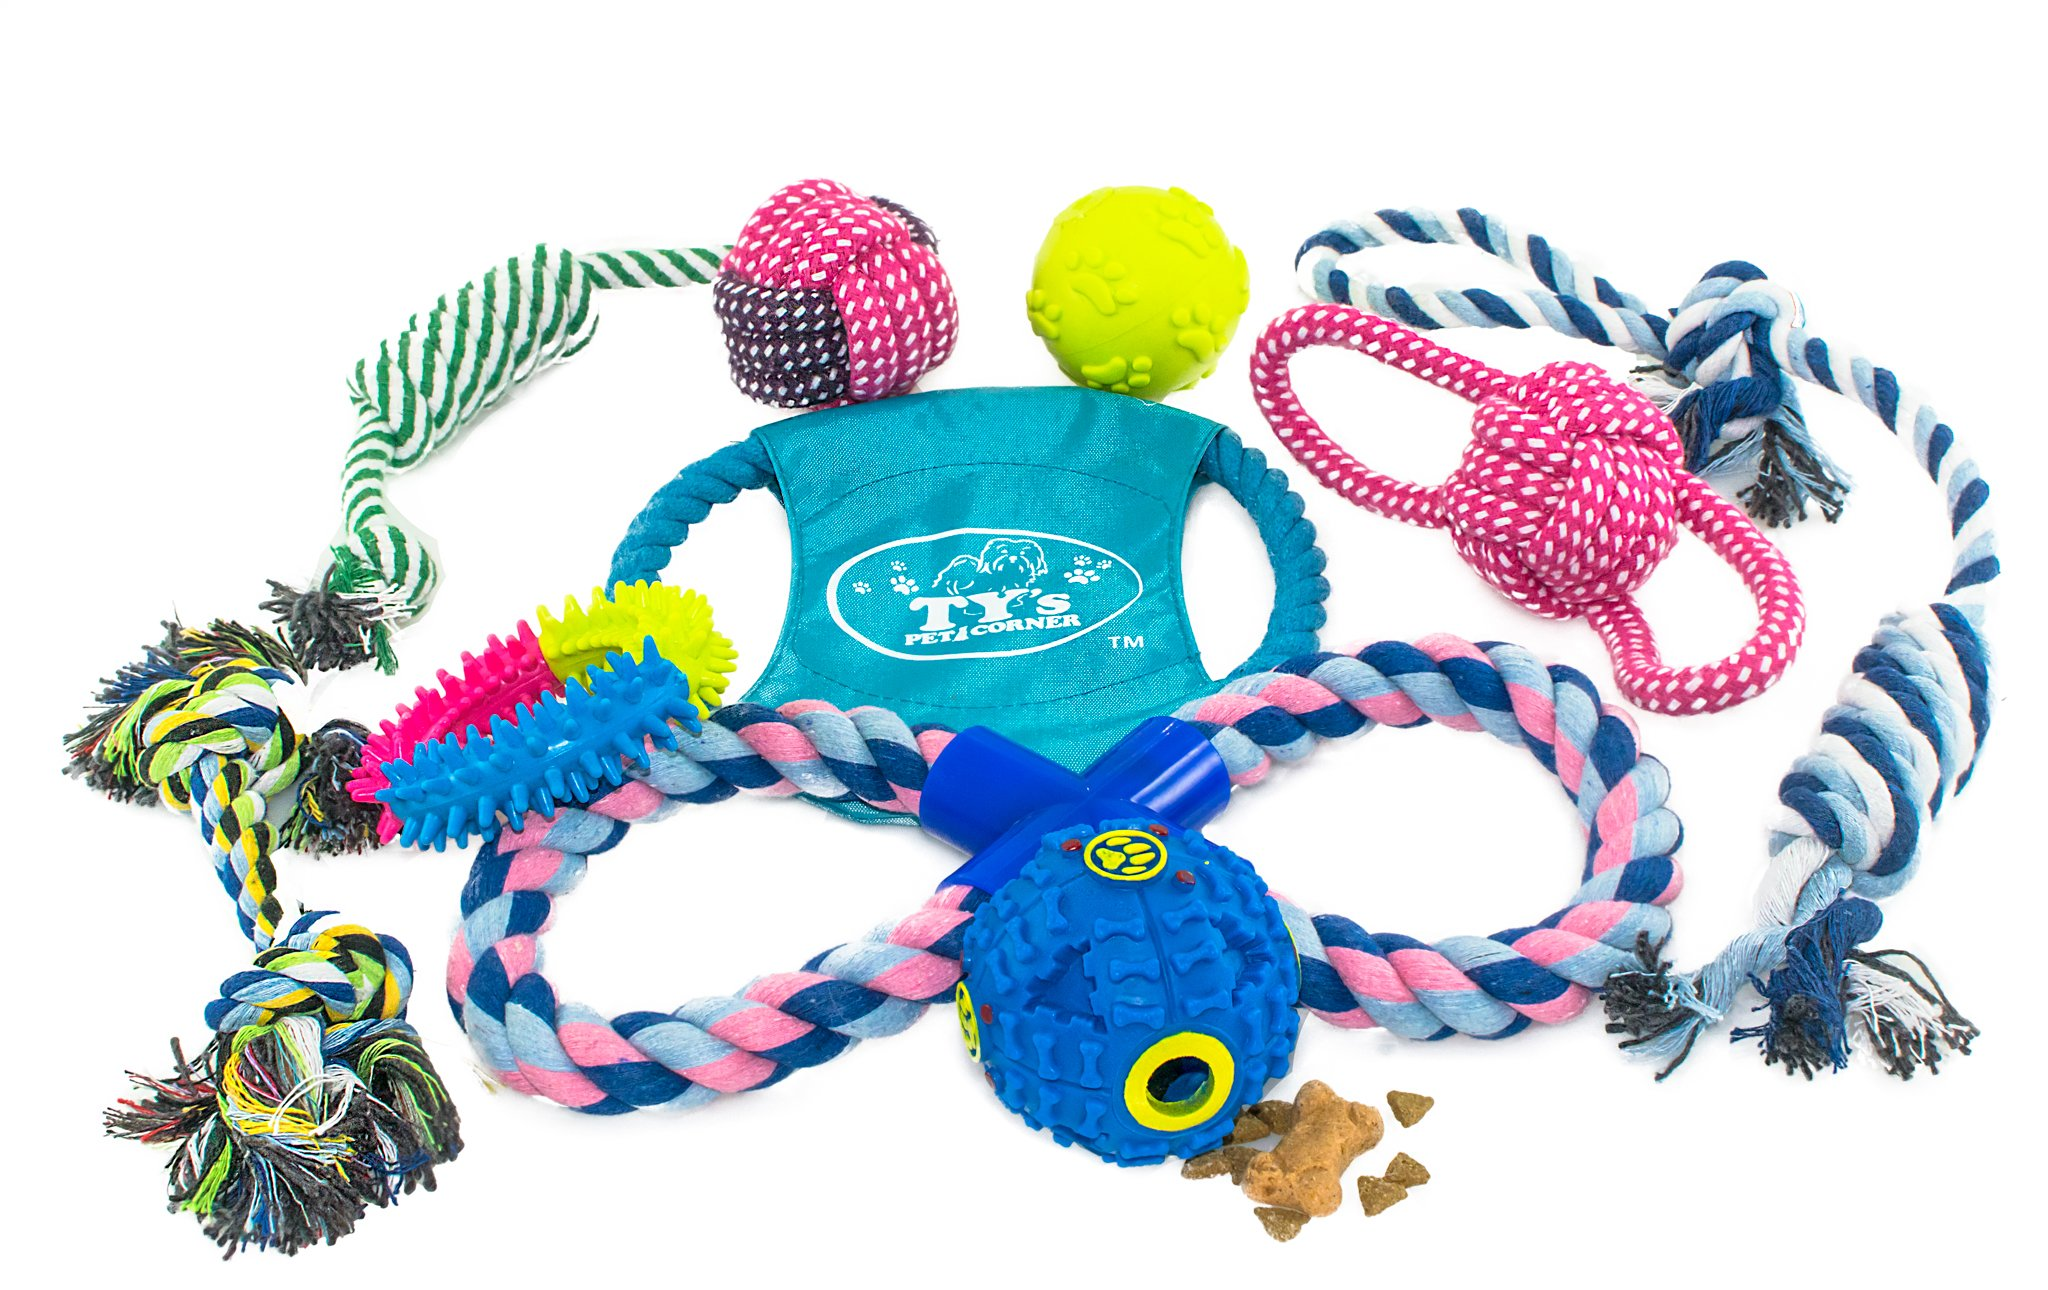 Ty's Pet Corner Dog Toy Variety Pack of Rope Toys, Rope Balls, Squeaky and Puppy Chew Toys Including IQ Treat Dispensing Ball, Interactive Dog Frisbee, Fetch Toys, Tug of War, Puppy, Small/Medium Dogs